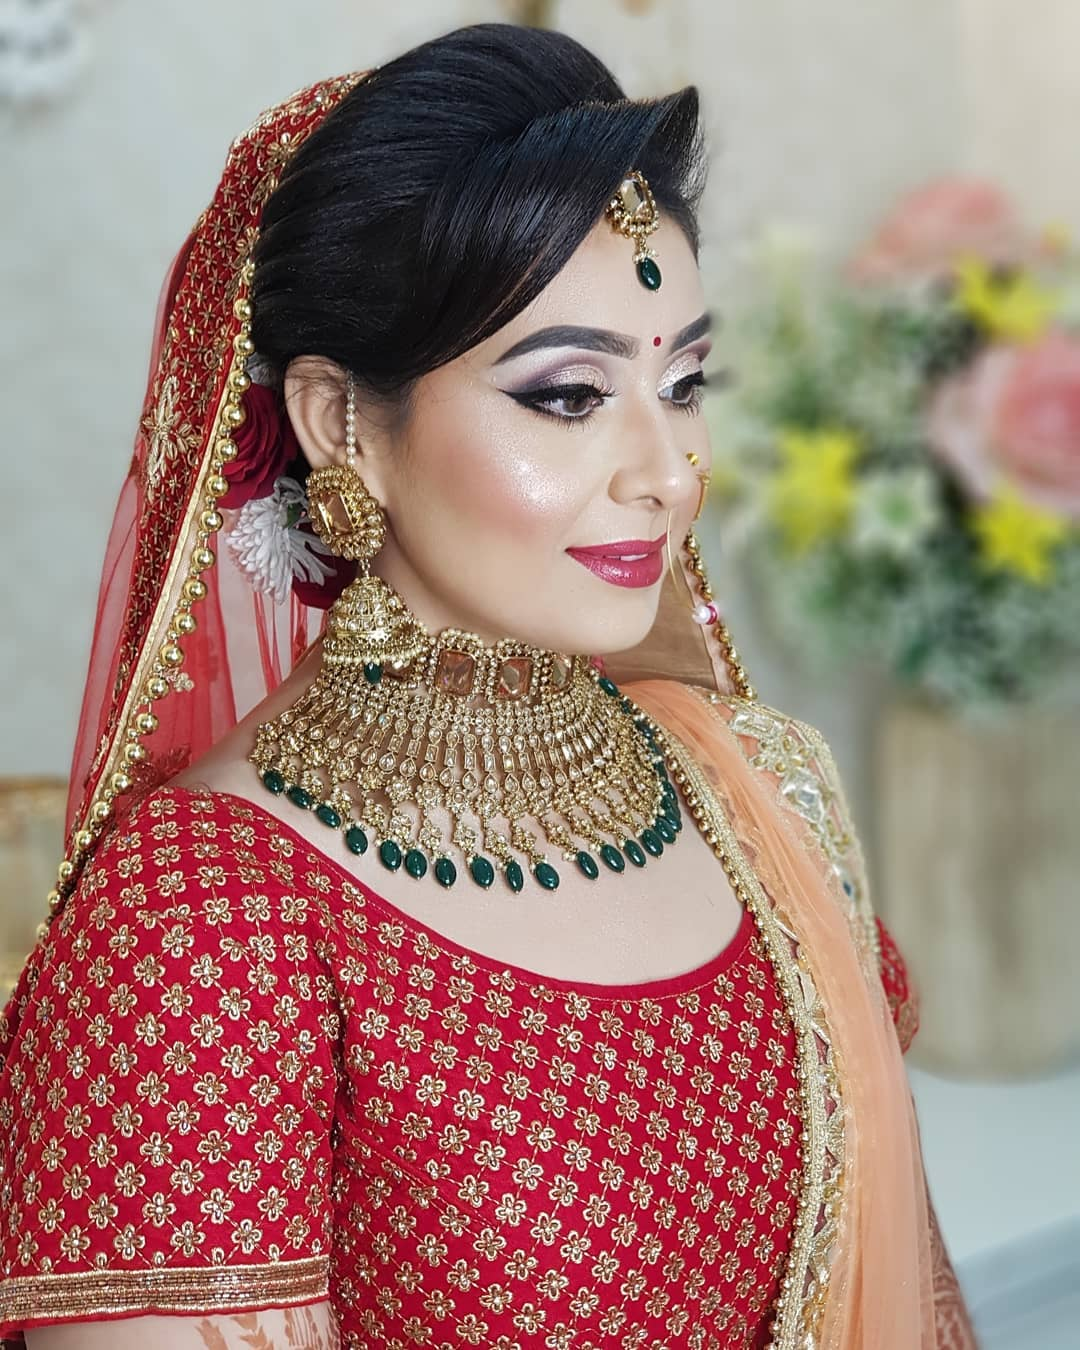 glowy makeup look & natural beauty in bridal makeup with jewellery, stylish hairstyles free images download hd